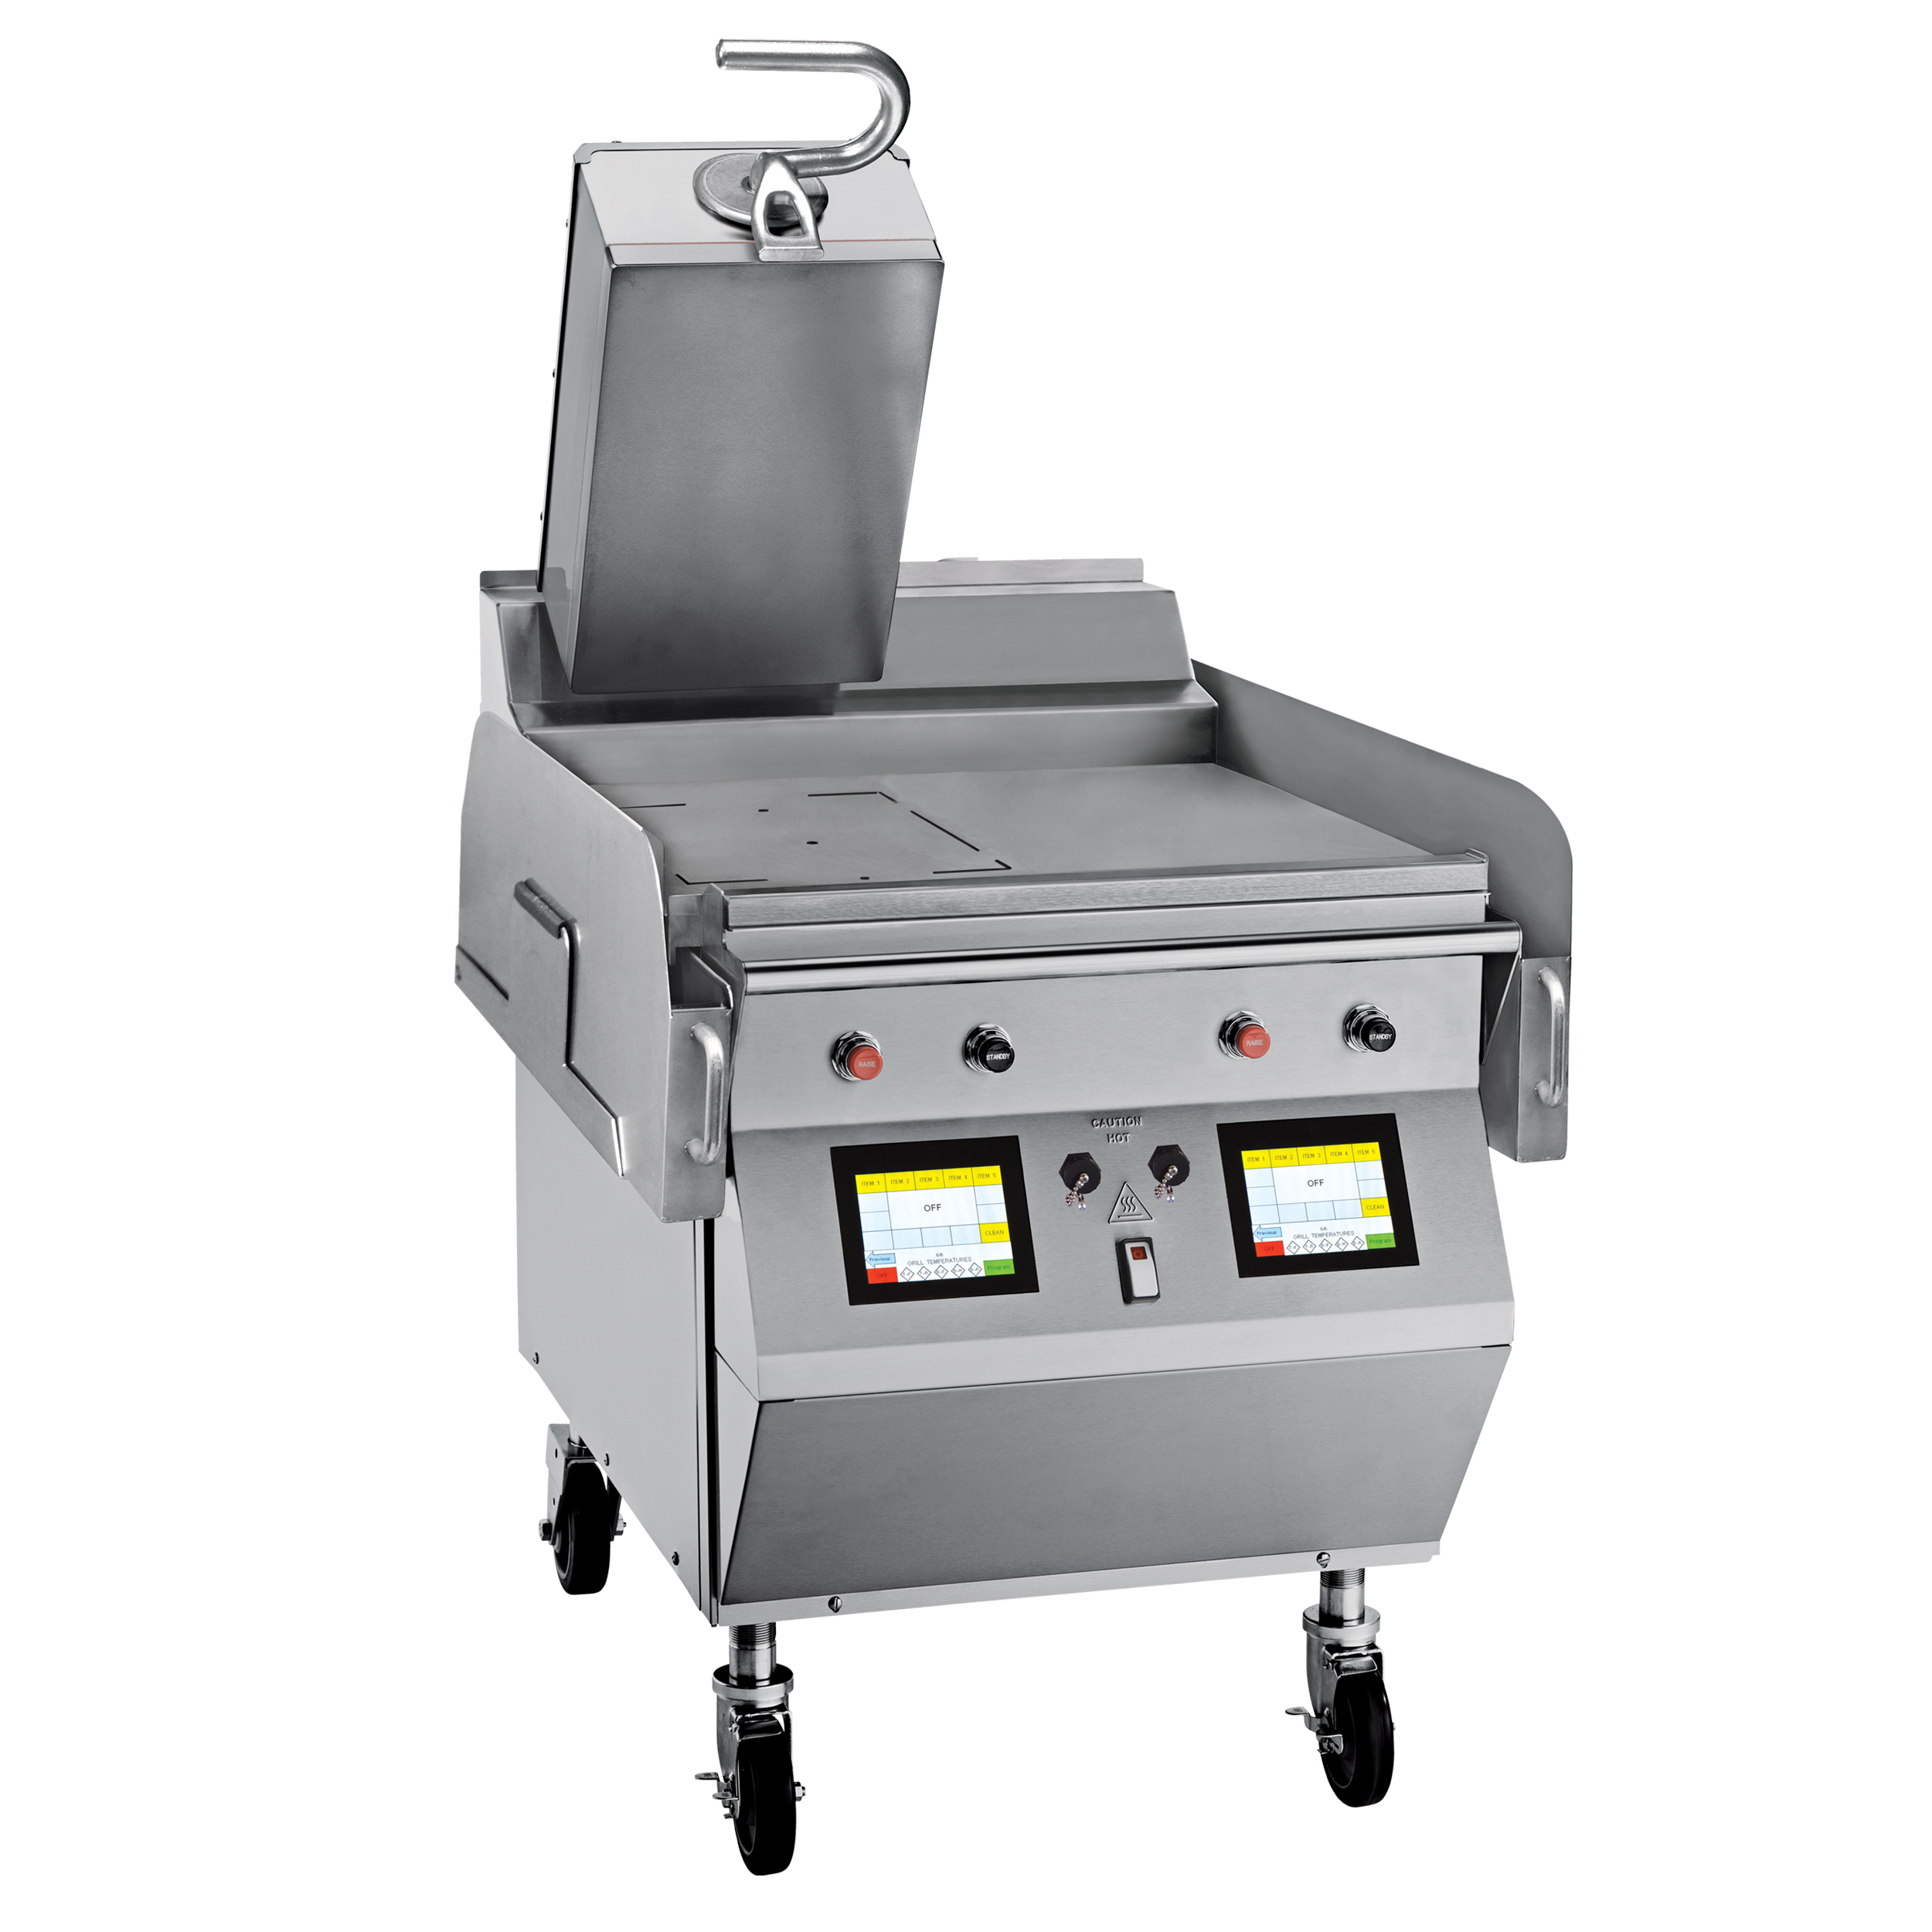 """Model L821   Gas 1 Platen 24"""" Grill  One touch menu selection automatically provides accurate TIME, TEMPERATURE and GAP settings for every product.  KEY SPECIFICATIONS:   Lower Cooking Surface Heat Source : Gas   Upper Platen Heat Source : Electric   Cooking Surface Dimensions : 24""""   Installation : Floor Model   Upper Platens : 1"""